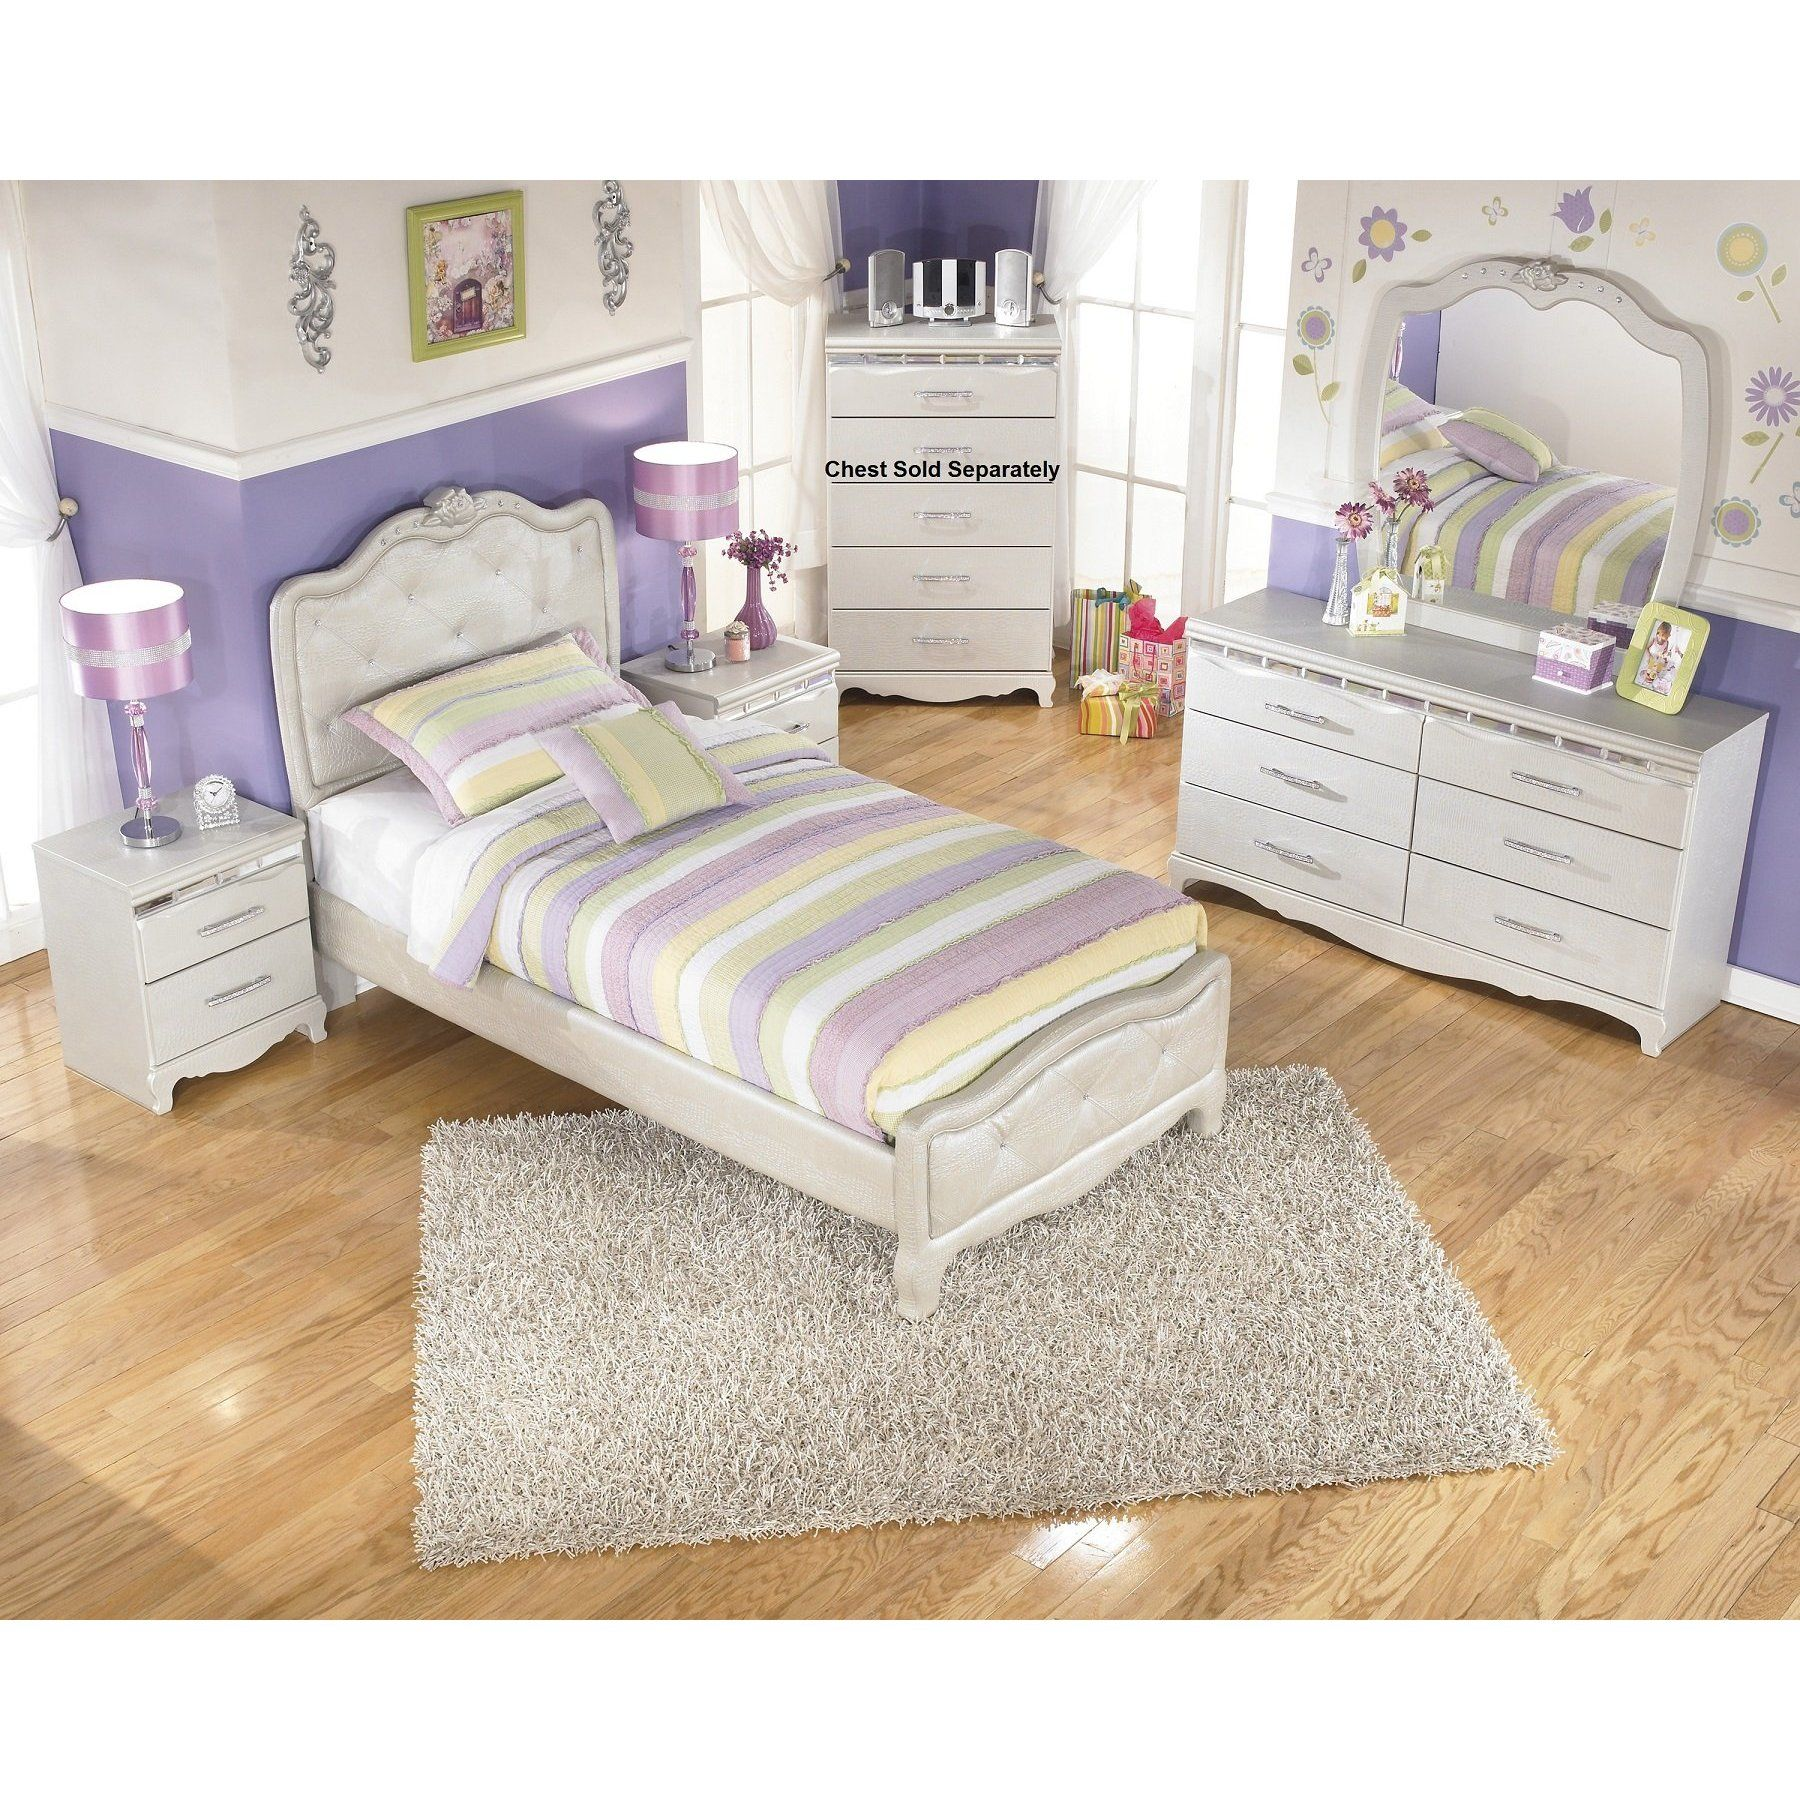 Julia Silver And Pear Girl S Twin Size Bedroom Set Bed Dresser Mirror 2 Night Stands